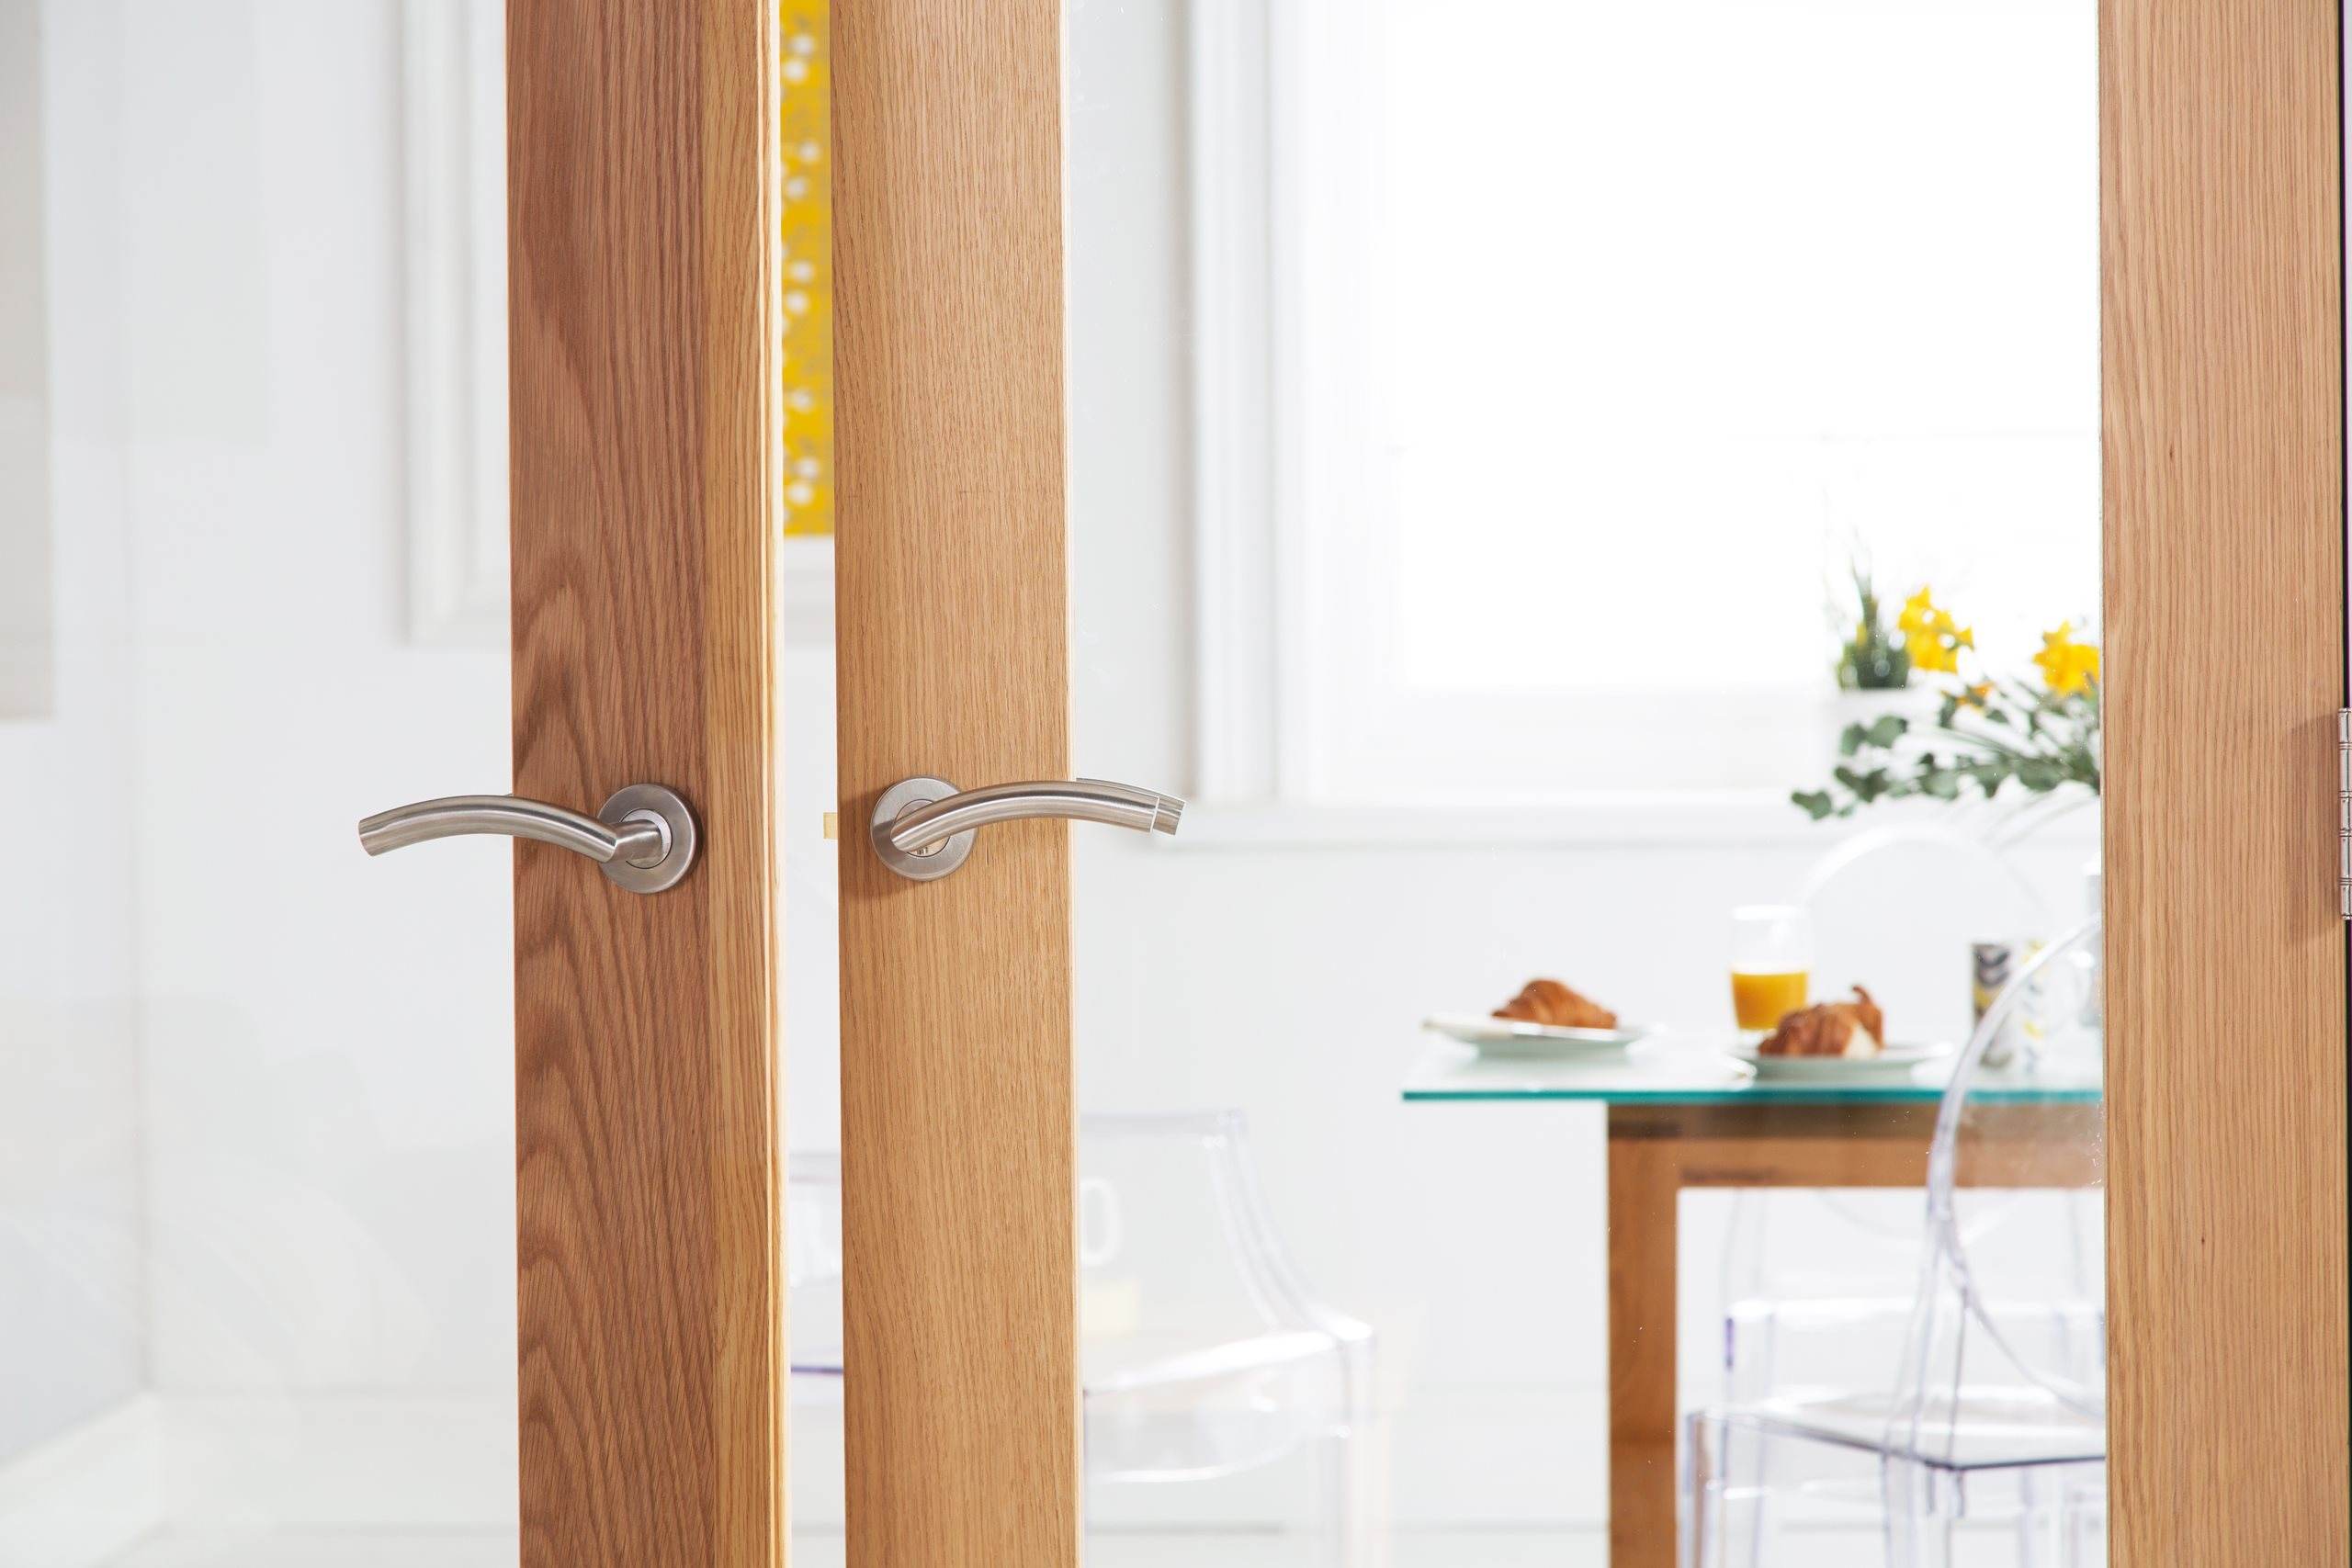 How to Fit a Pair of Interior Doors